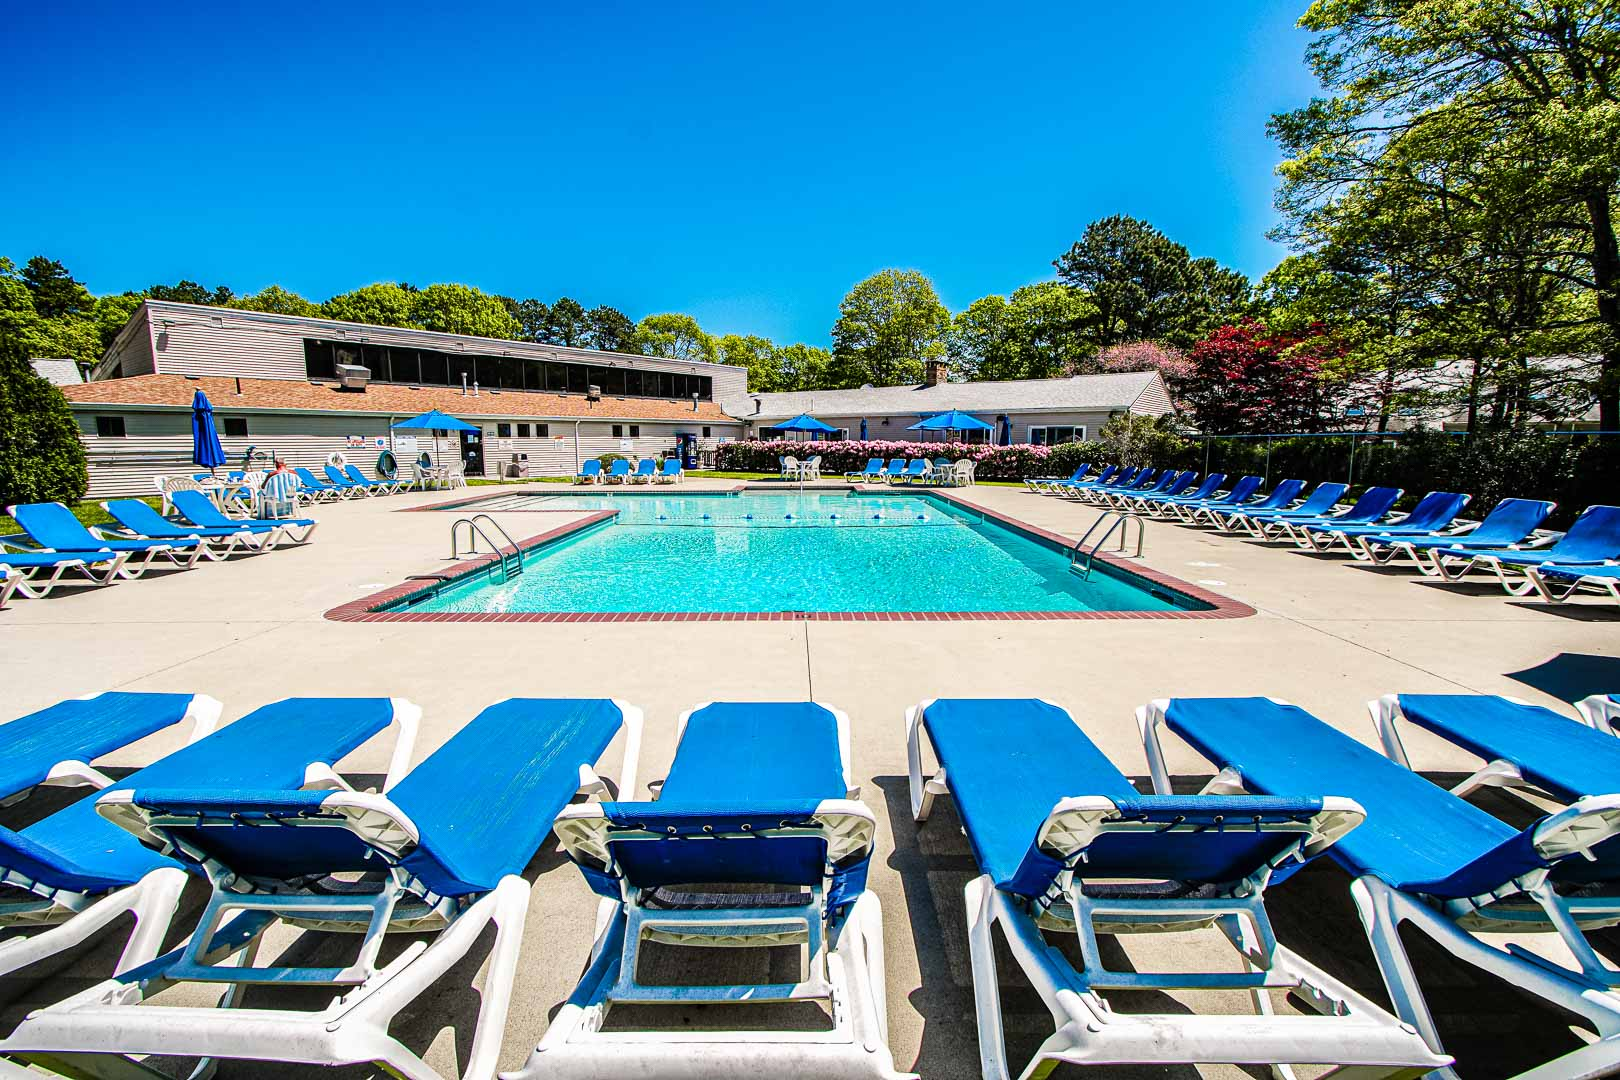 A scenic view of the outside swimming pool at VRI's Sea Mist Resort in Massachusetts.